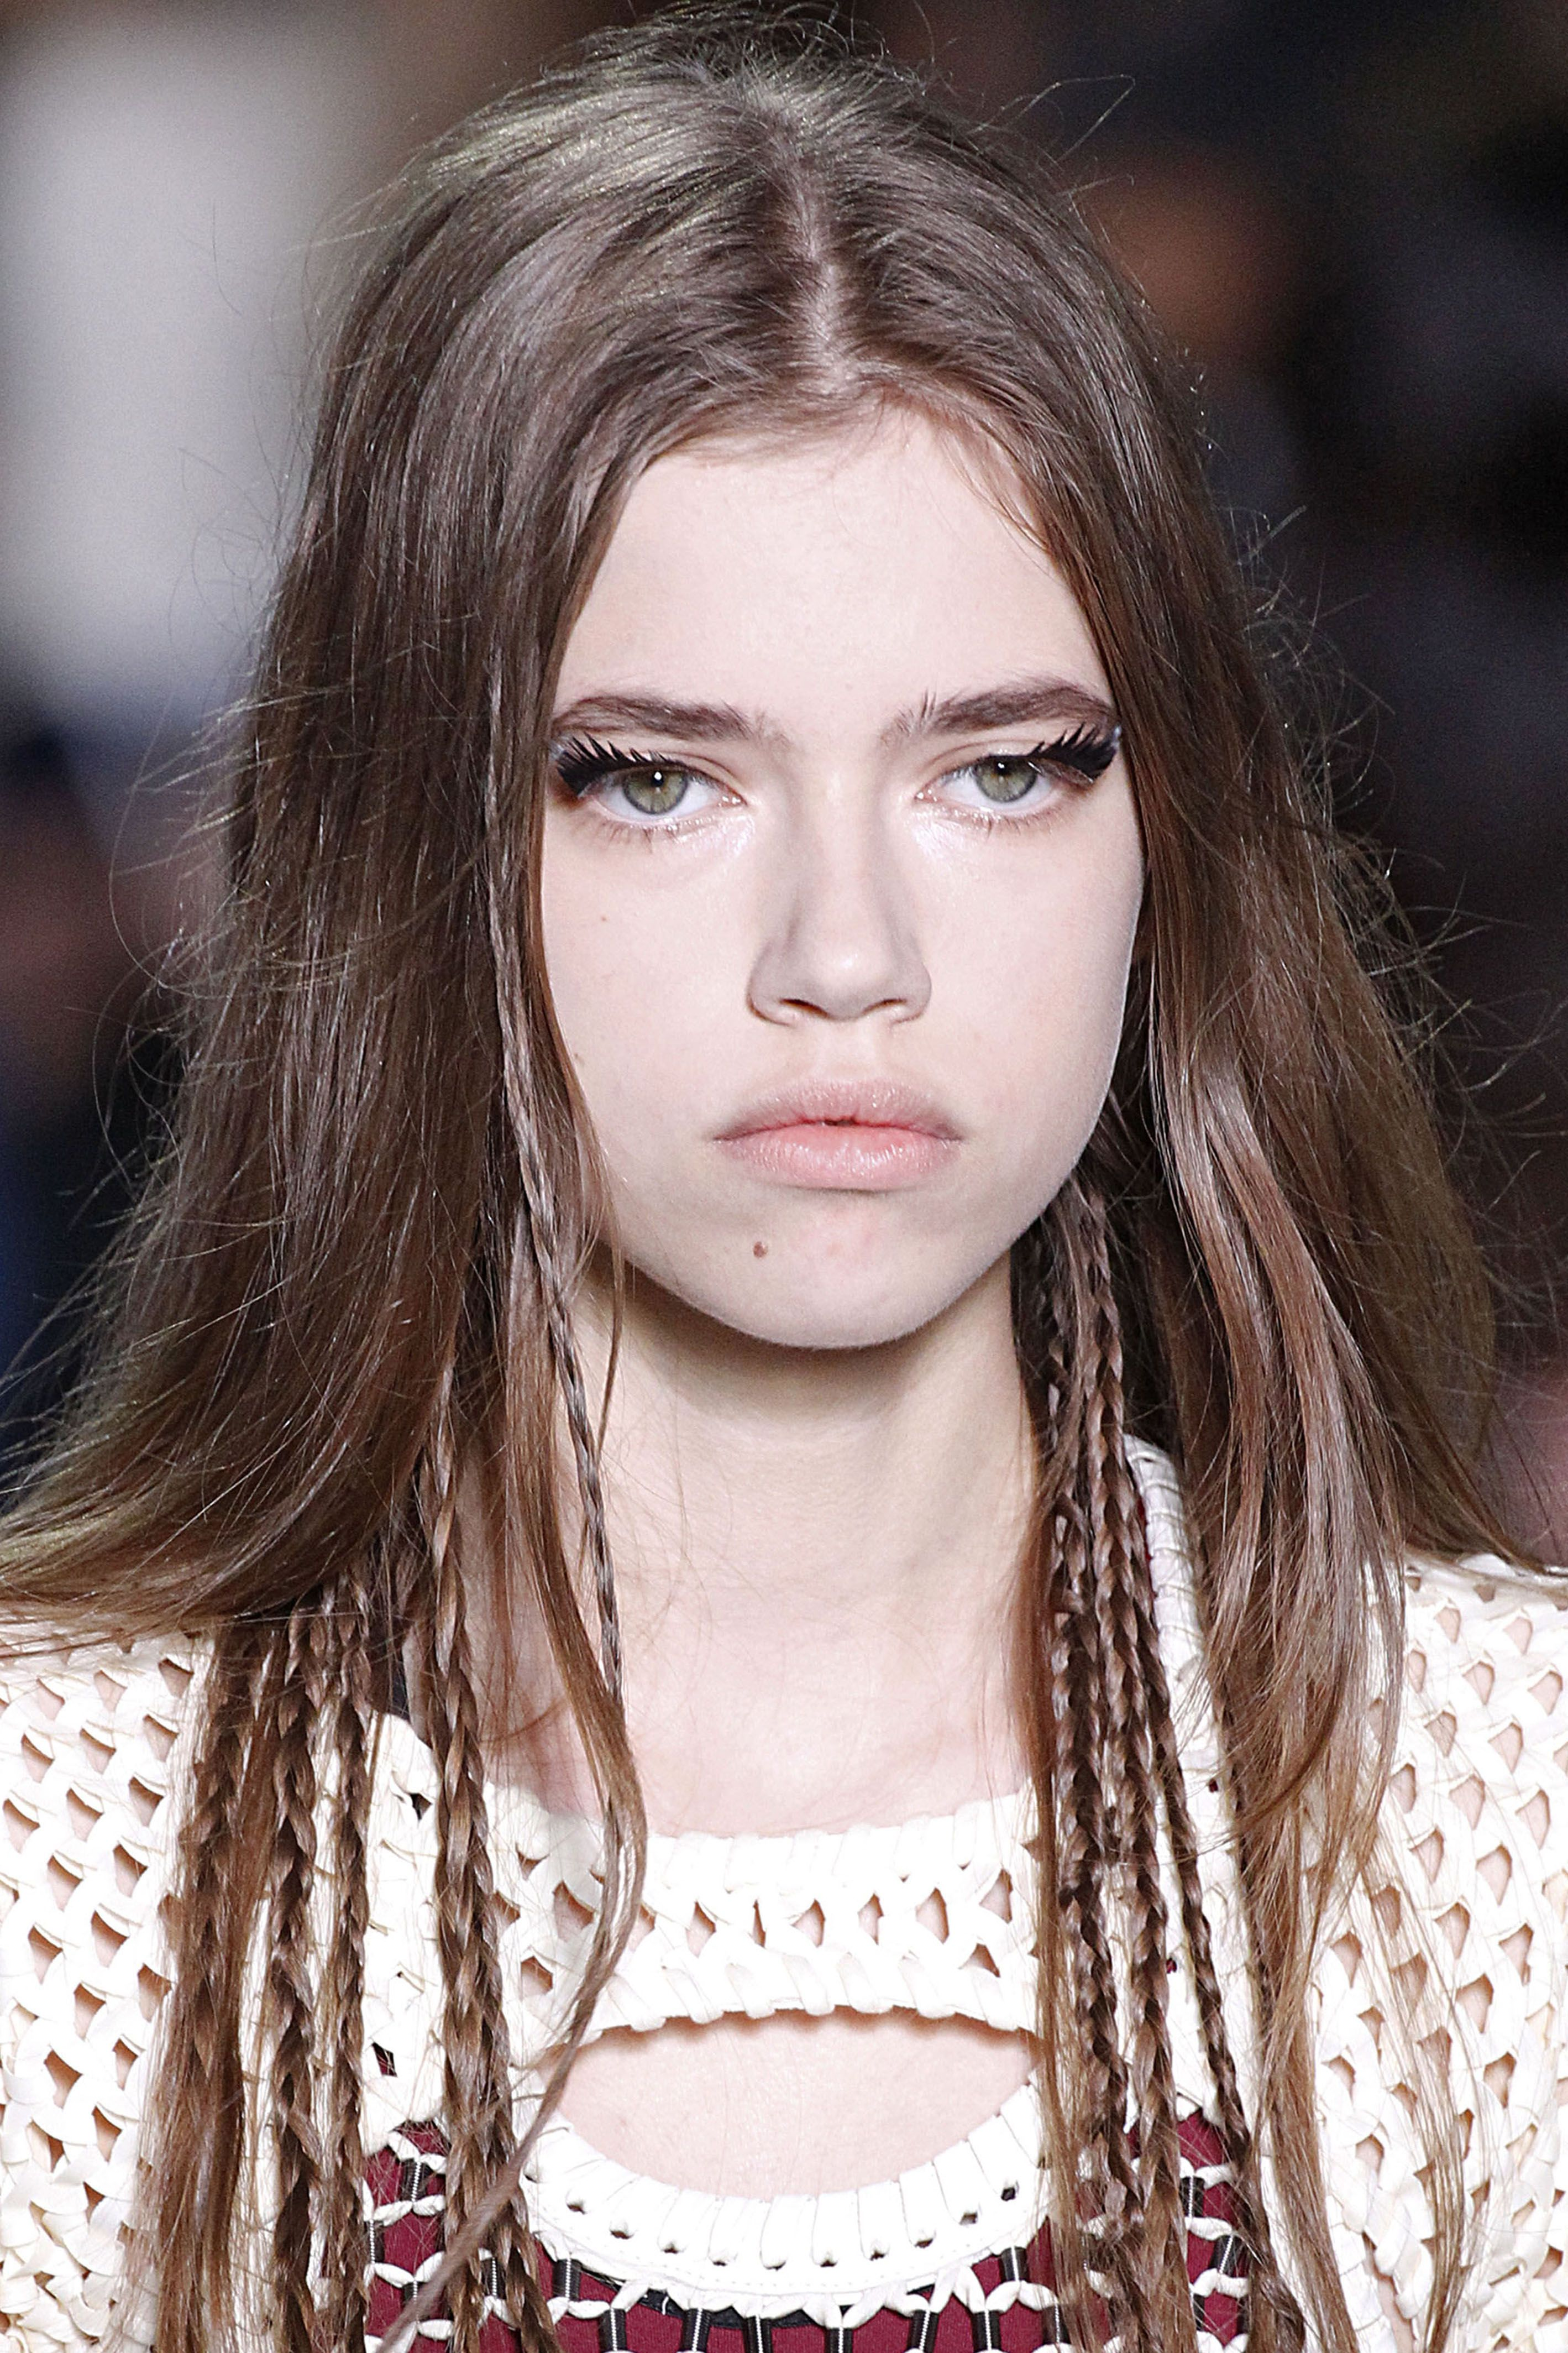 <p>Embrace your natural texture, but change things up with a few tiny braids that frame the face or stick out from the nape as seen at the Louis Vuitton Spring 2016 show. If you want to go sans elastic, spray your strands with dry shampoo and they'll stay put on their own.</p>